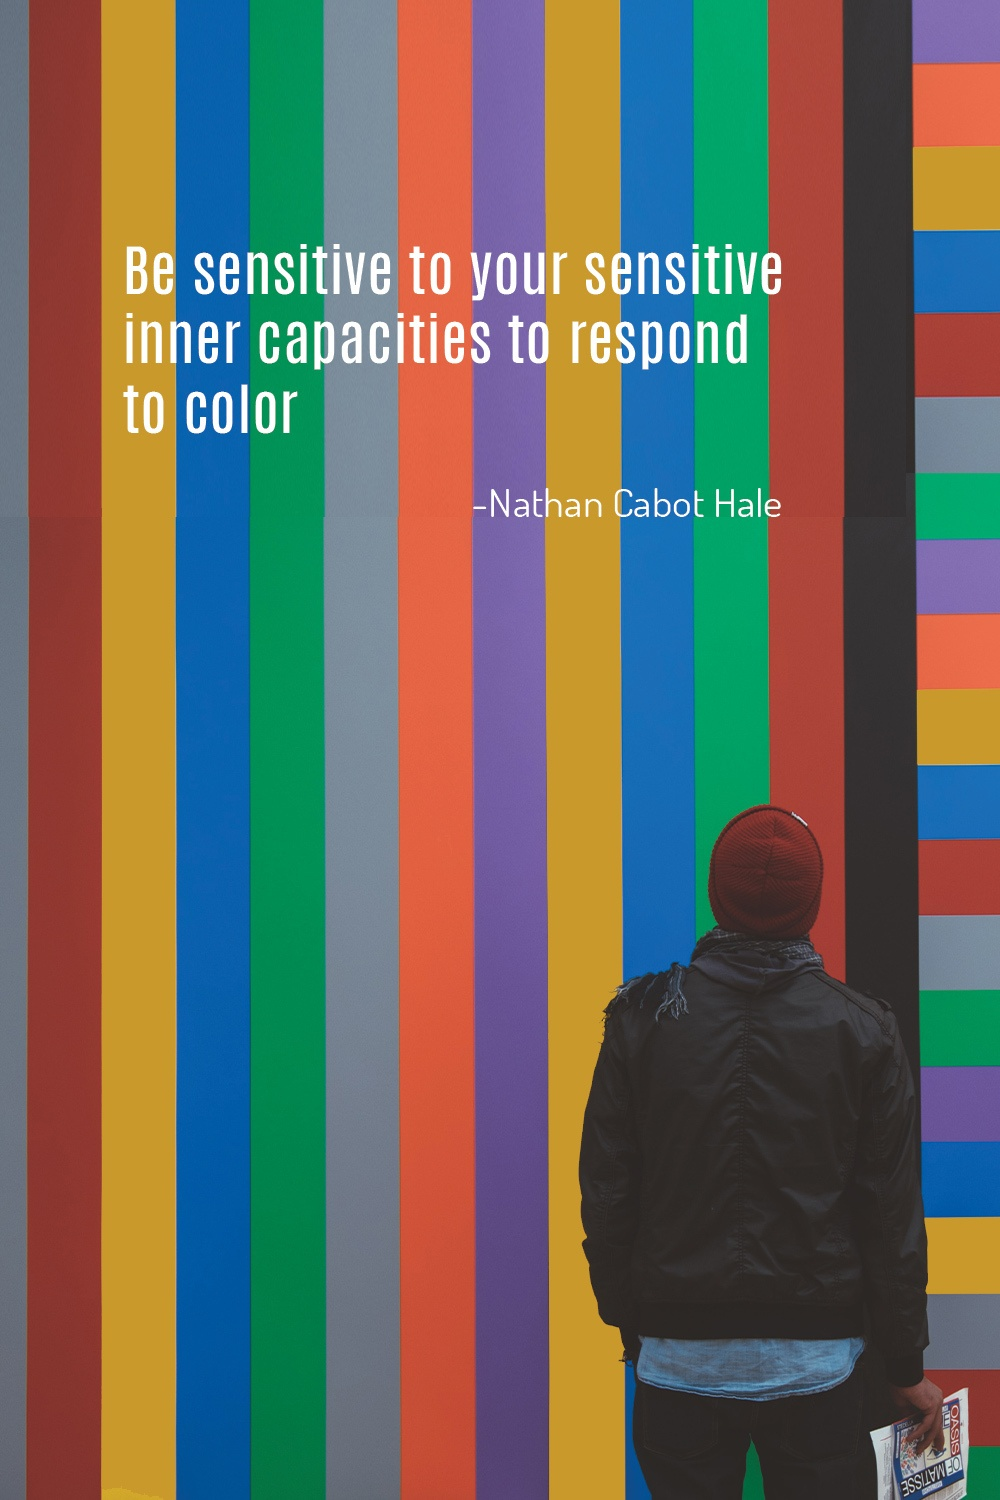 """Be sensitive to your sensitive inner capacities to respond to color."" - Nathan Cabot Hale"